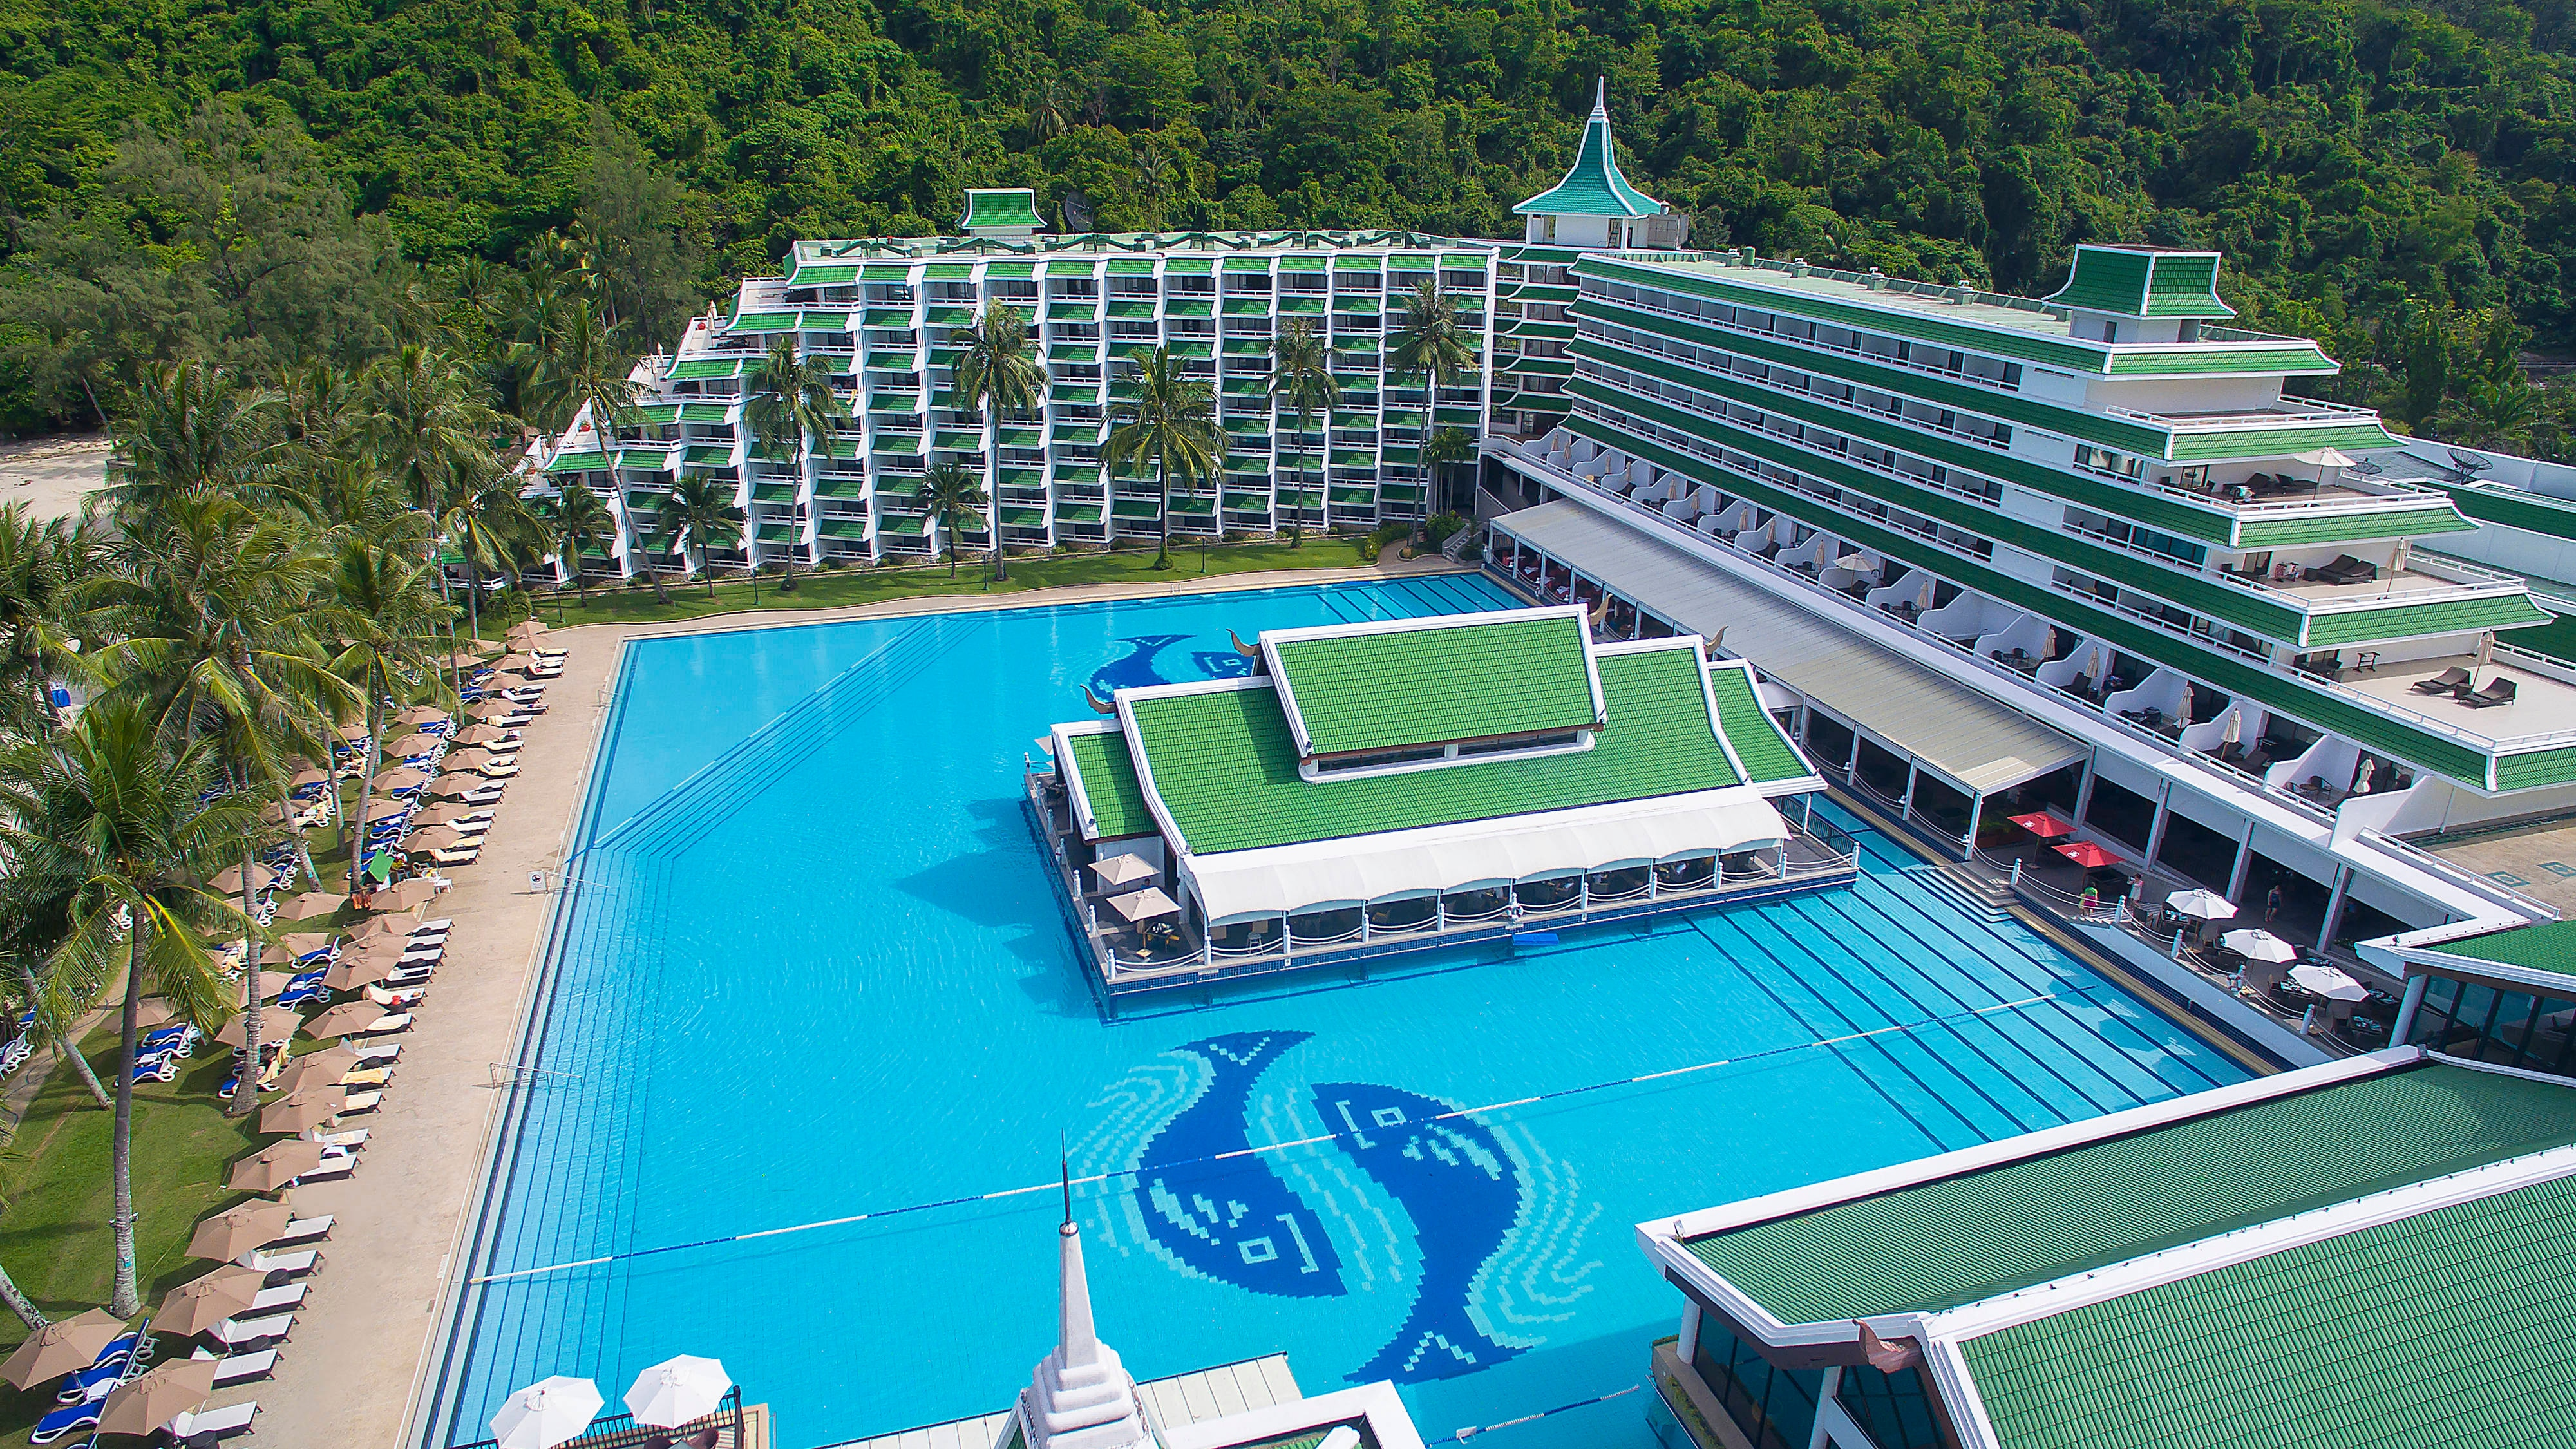 Sea View swimming Pools and lush location